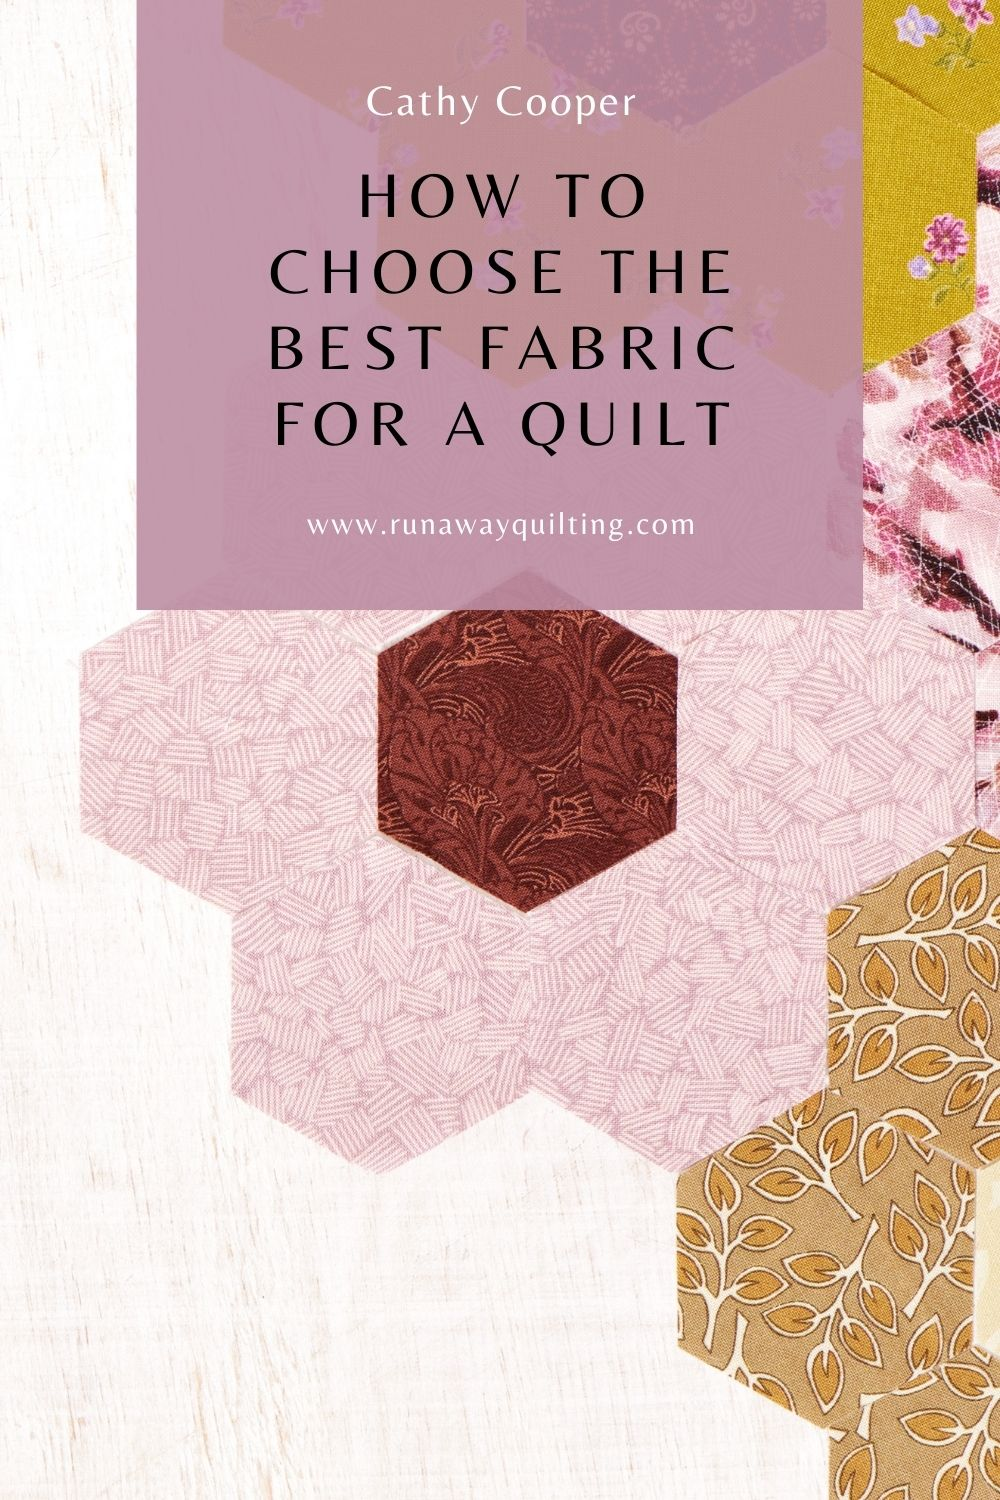 How to Choose the Best Fabric for a Quilt